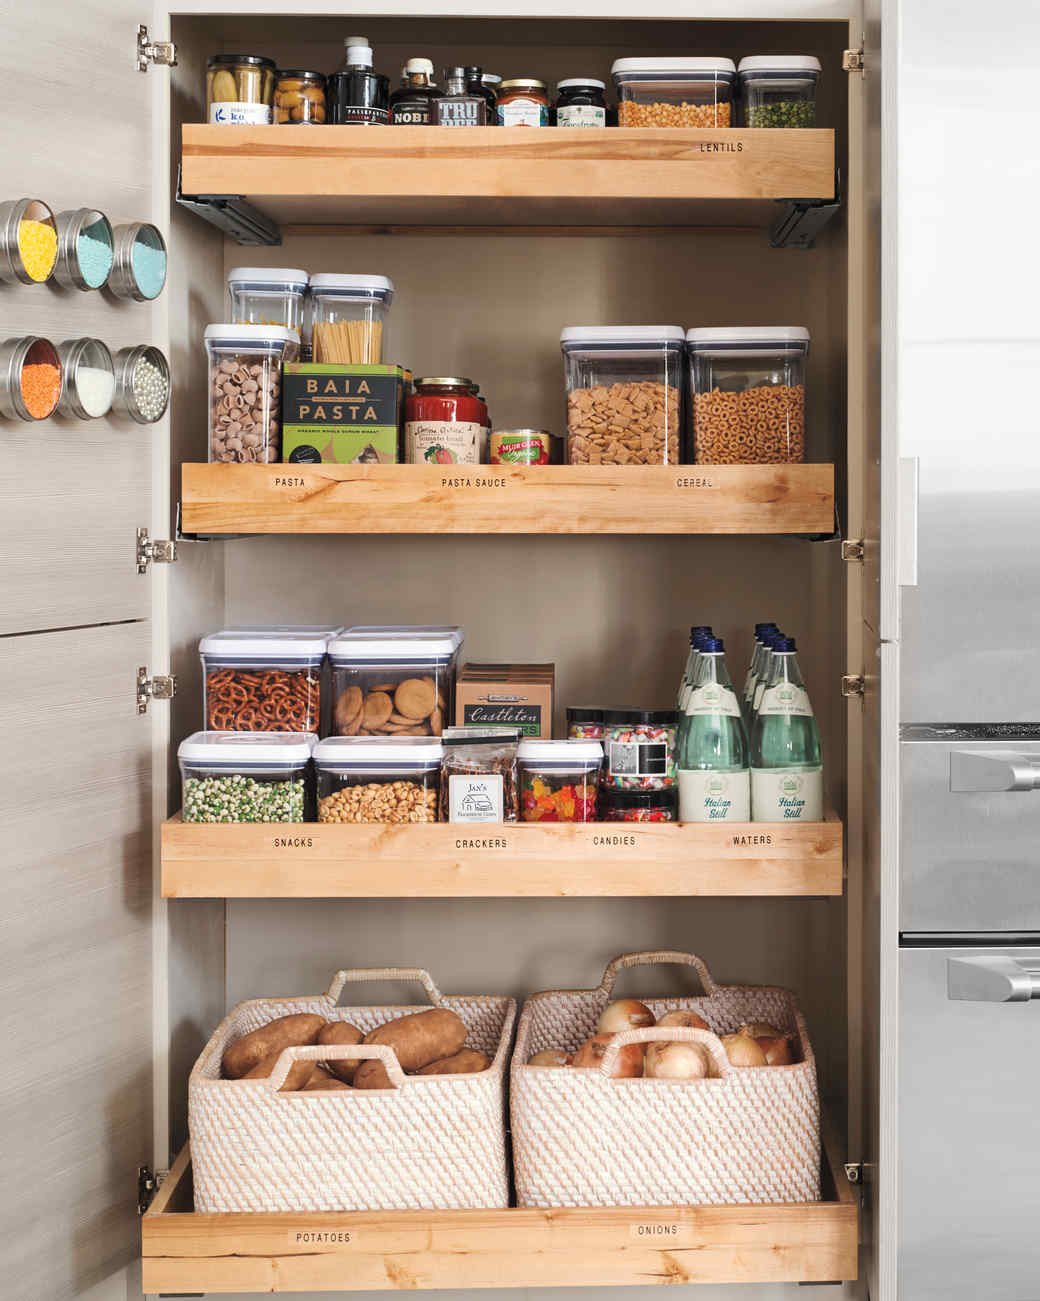 Best ideas about Pantry Storage Ideas . Save or Pin 10 Best Pantry Storage Ideas Now.